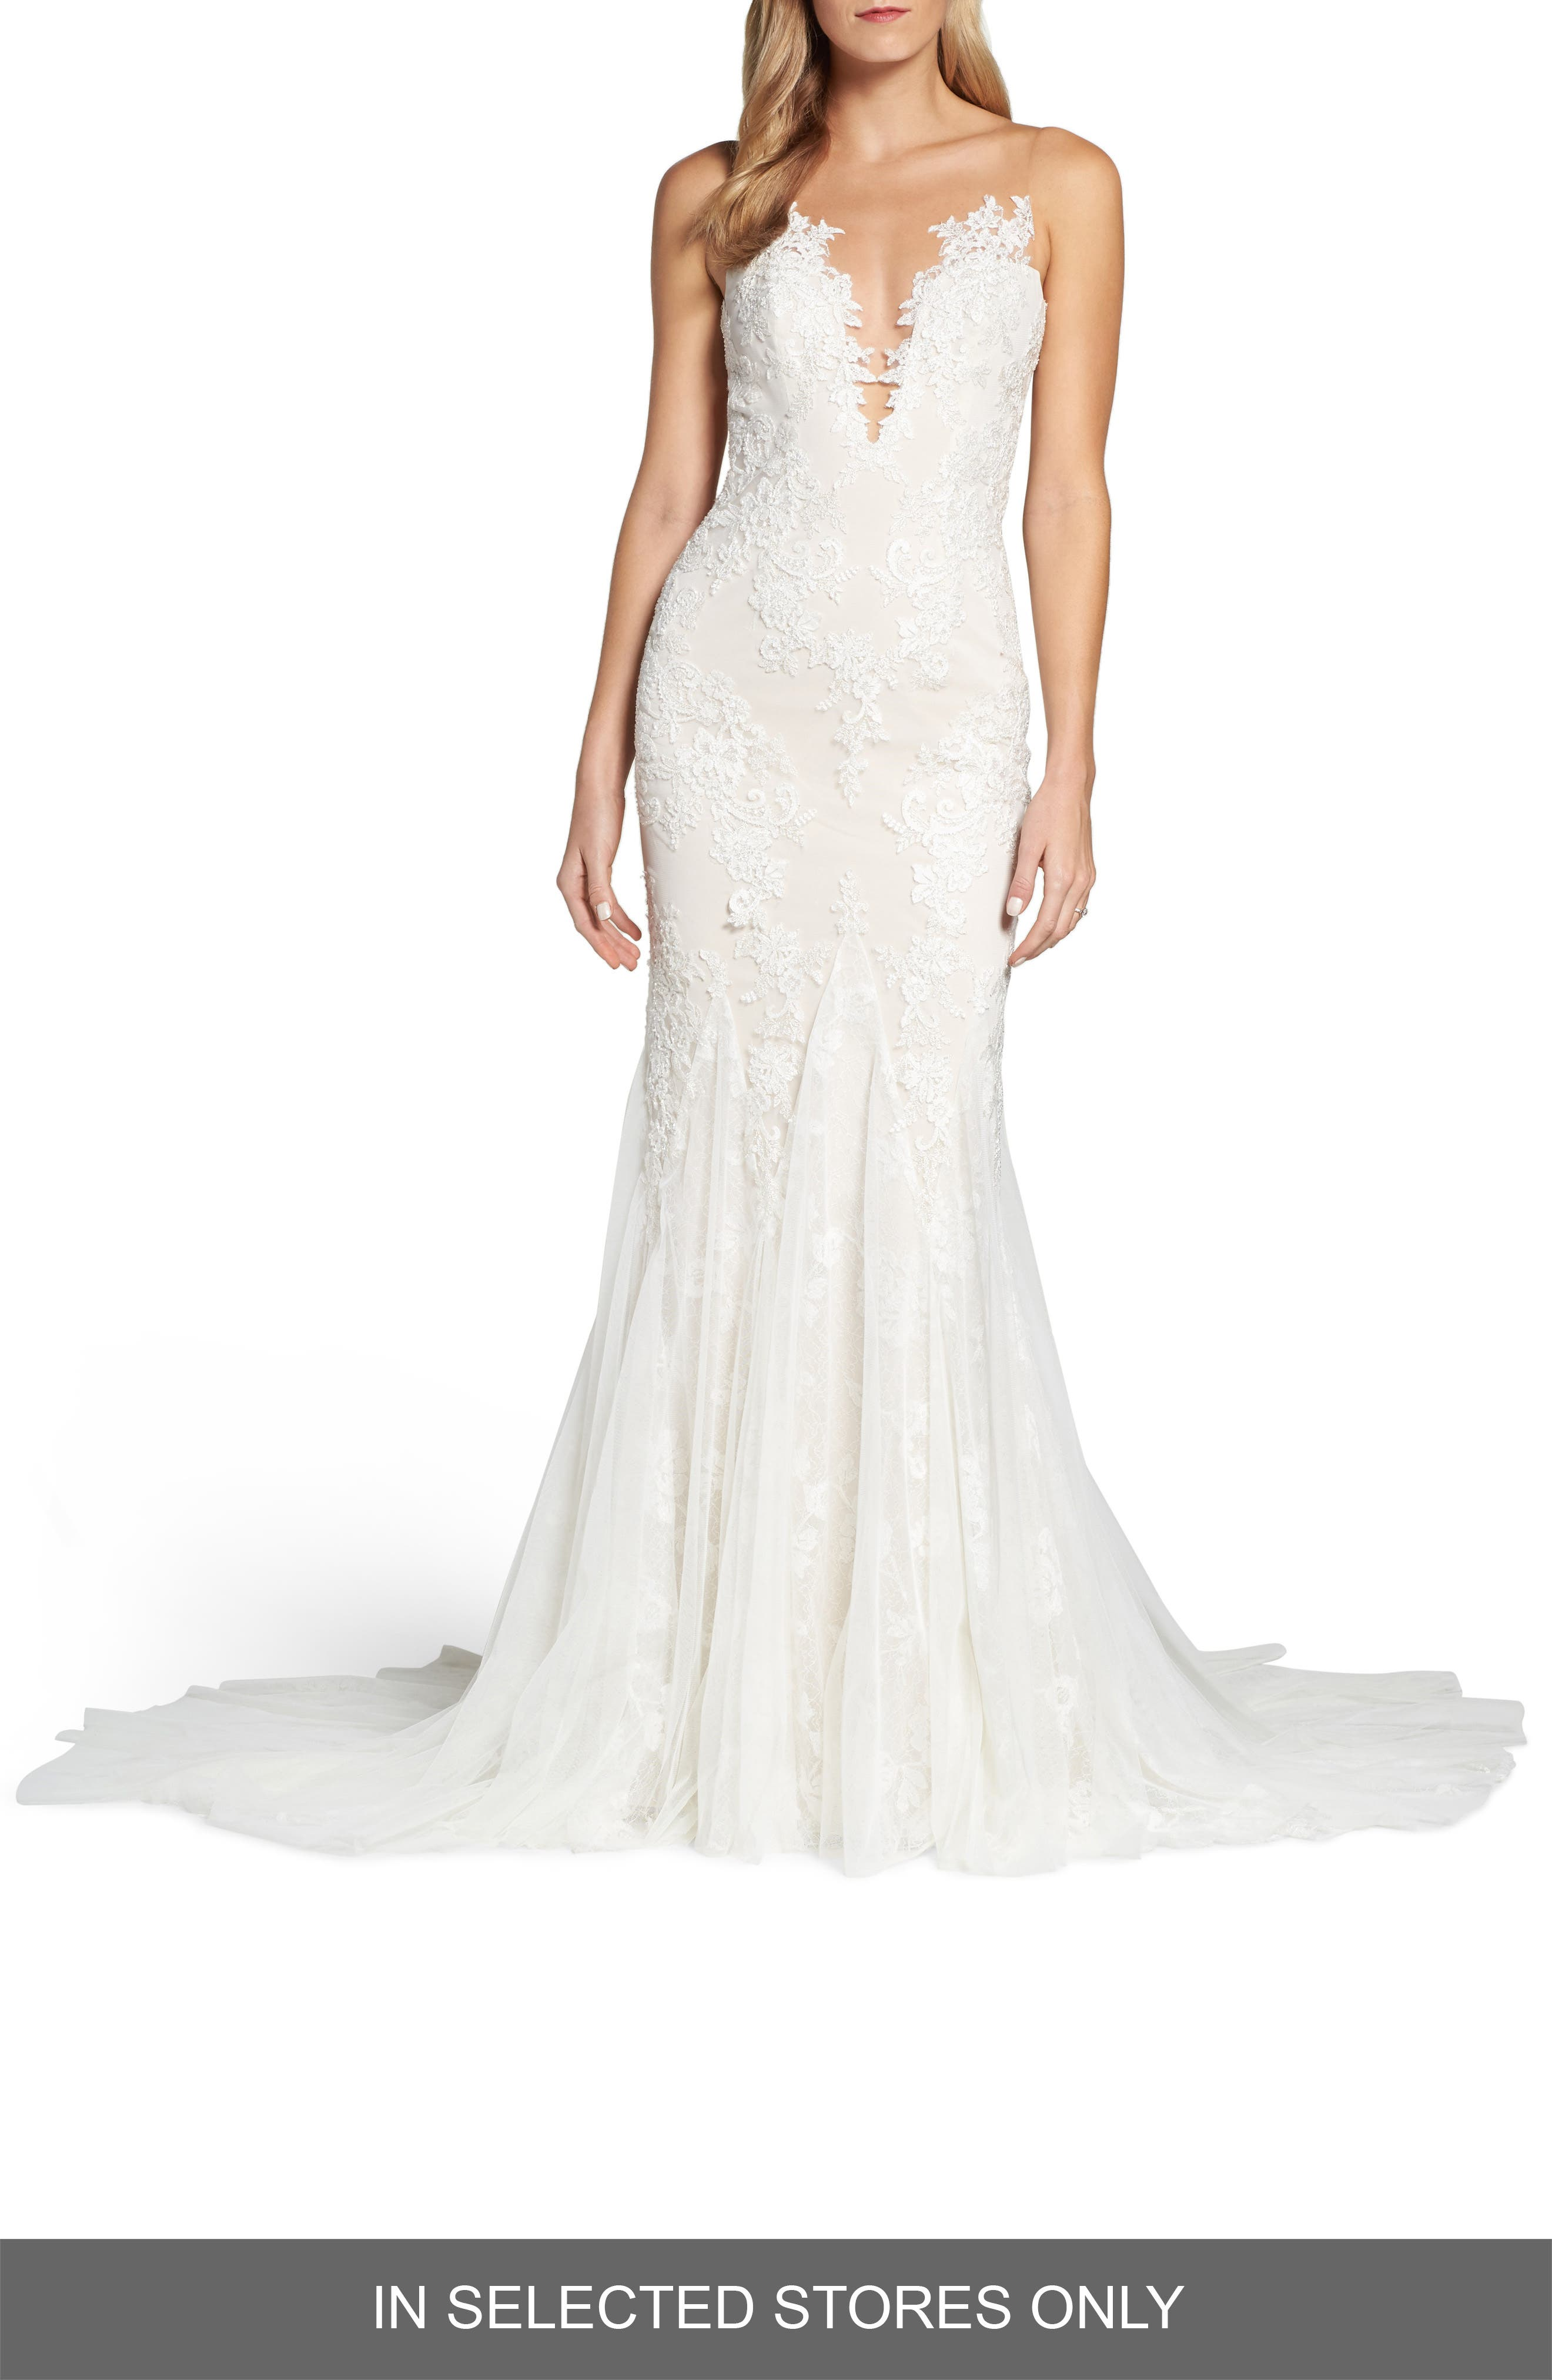 Daisy Illusion V-Neck Gown,                         Main,                         color, OFF WHITE/ SOFT NUDE